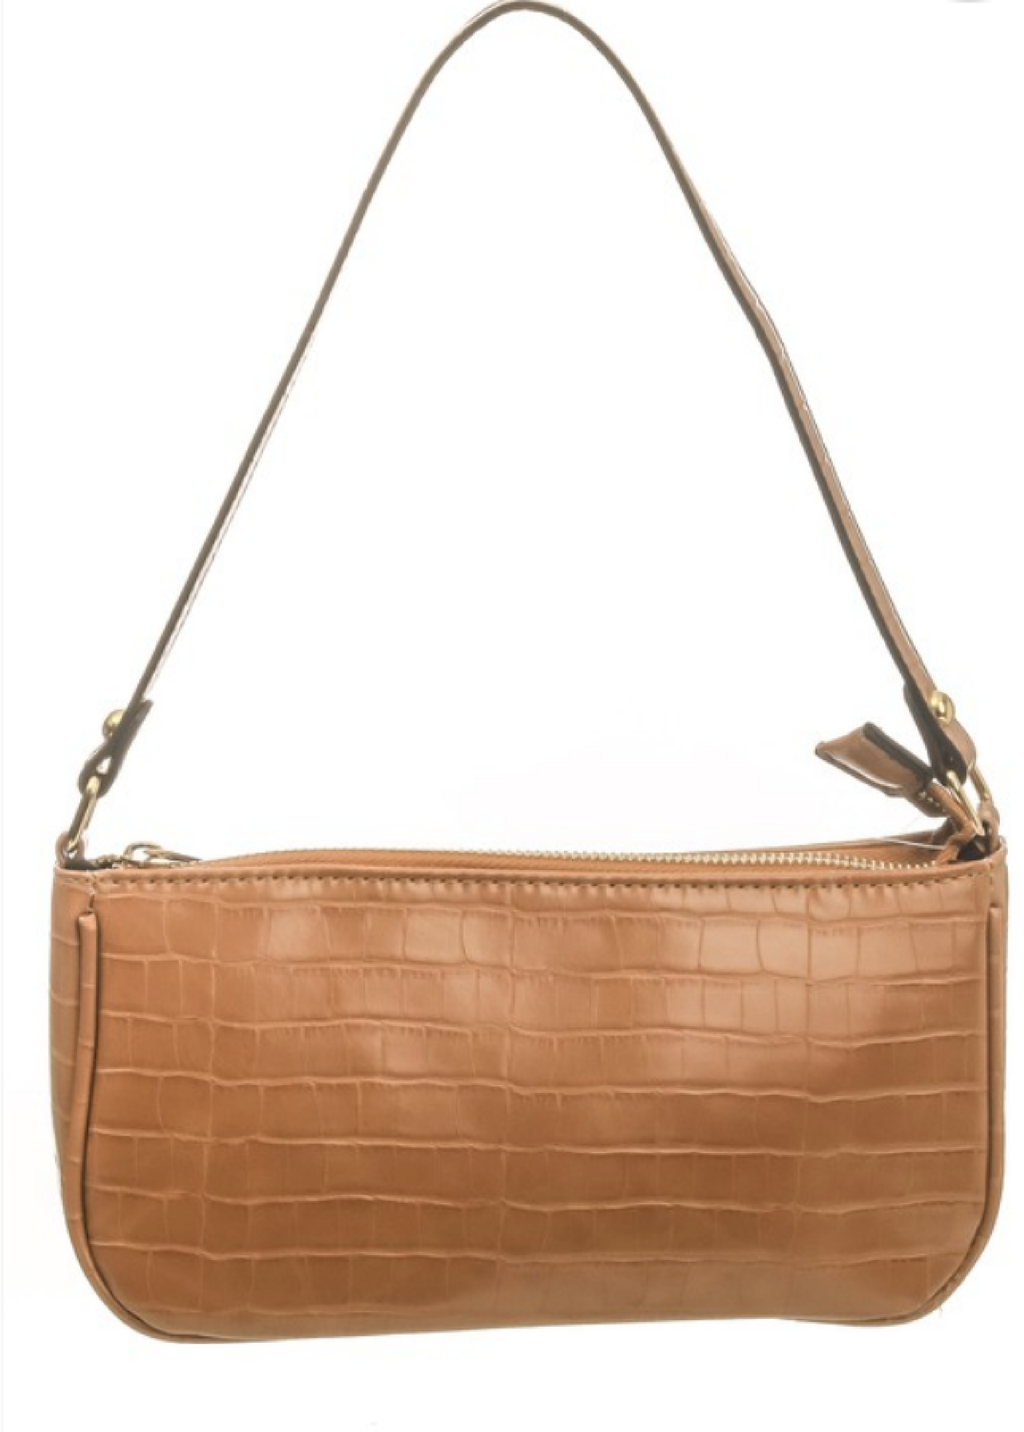 Havana Nights Mini Bag in Camel - shop dwntwn